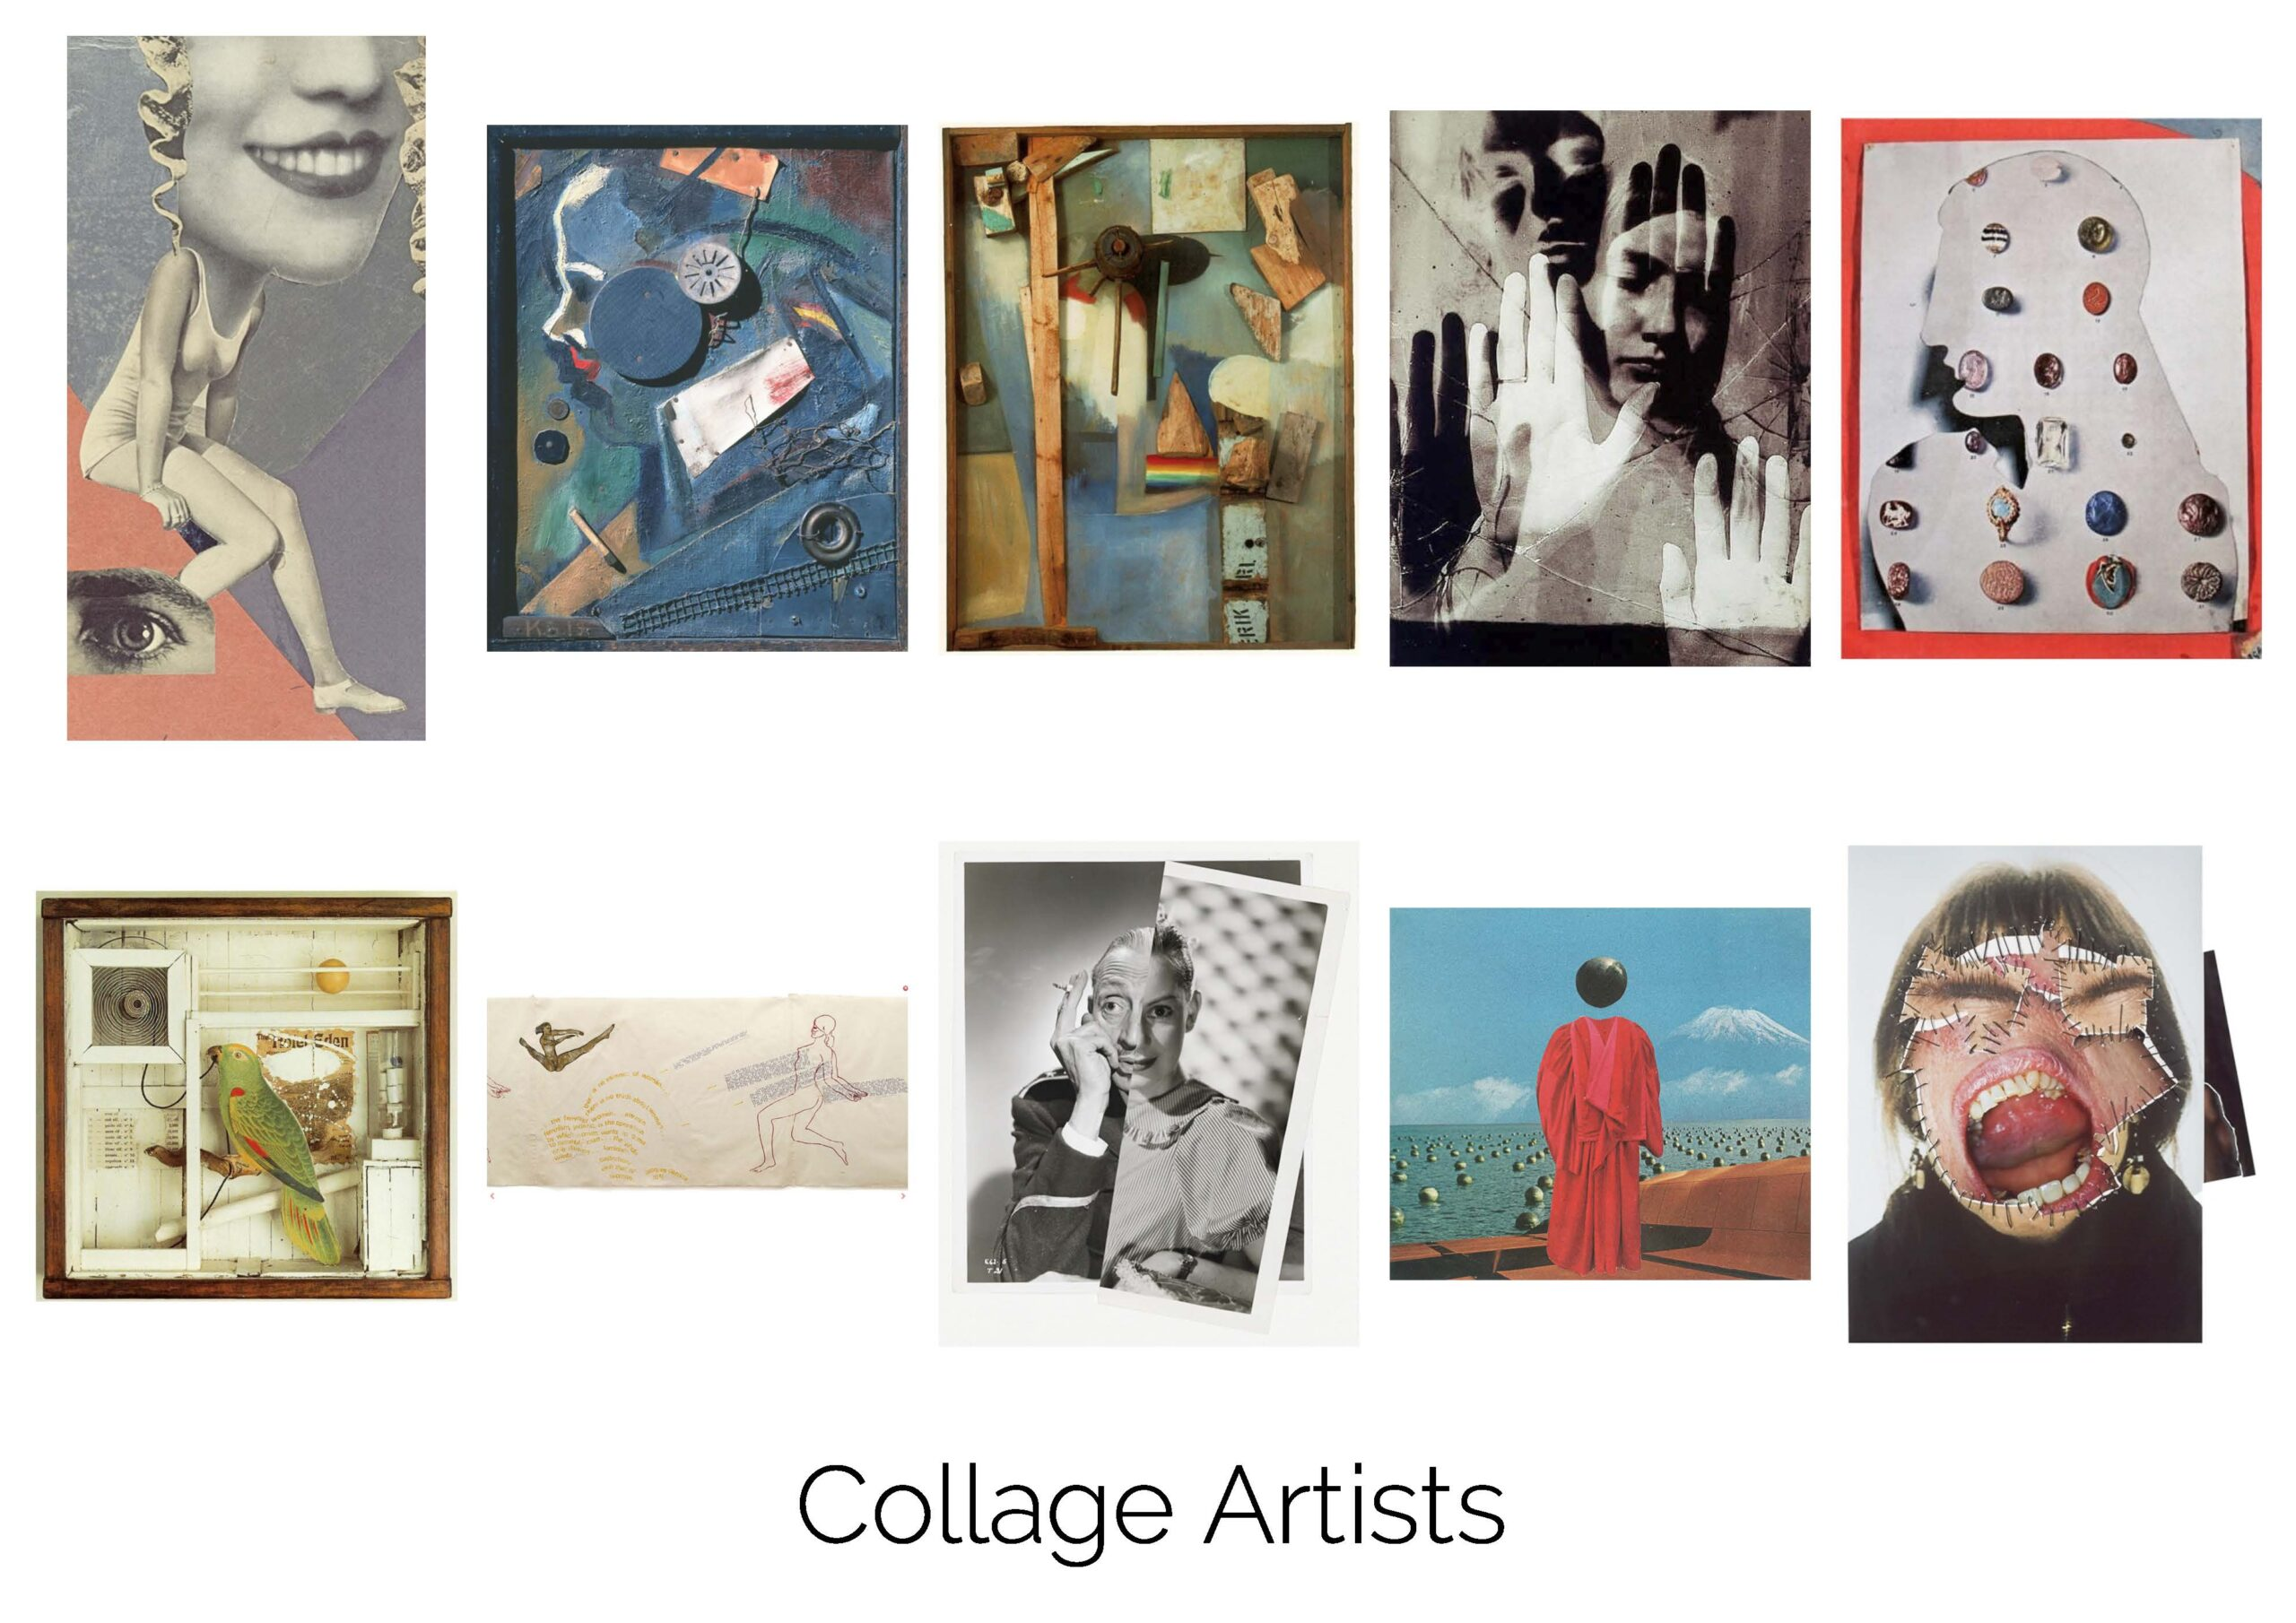 Collage Artists